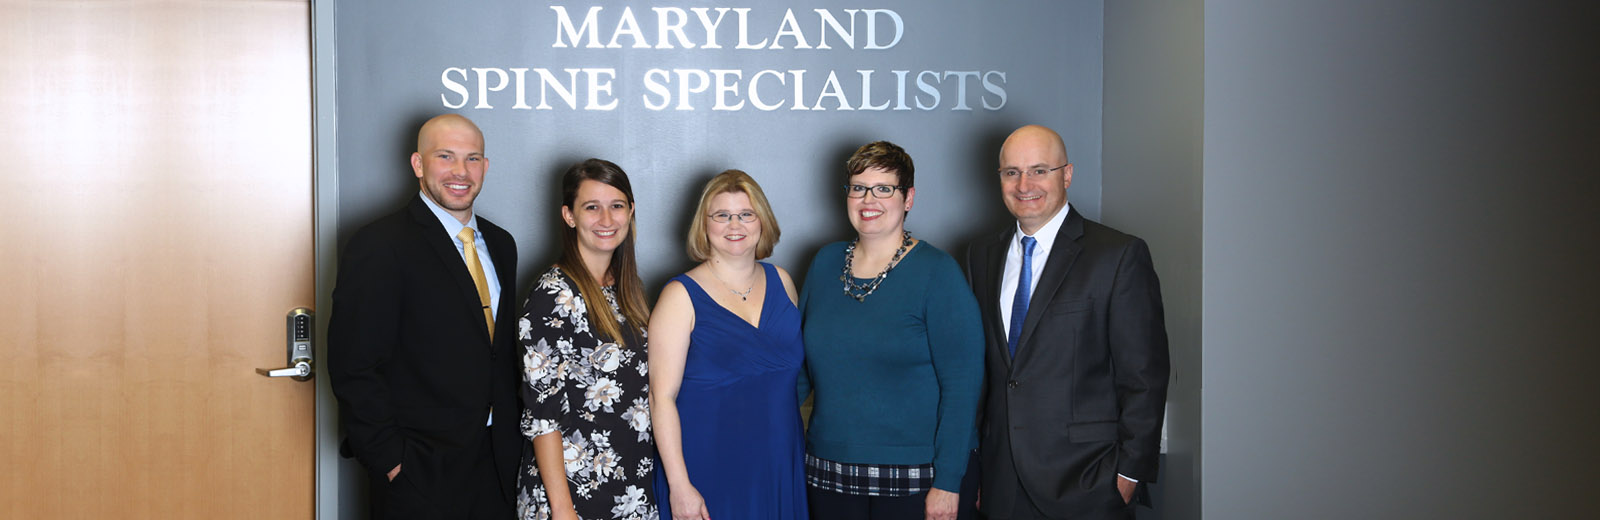 Maryland Spine Specialists Staff